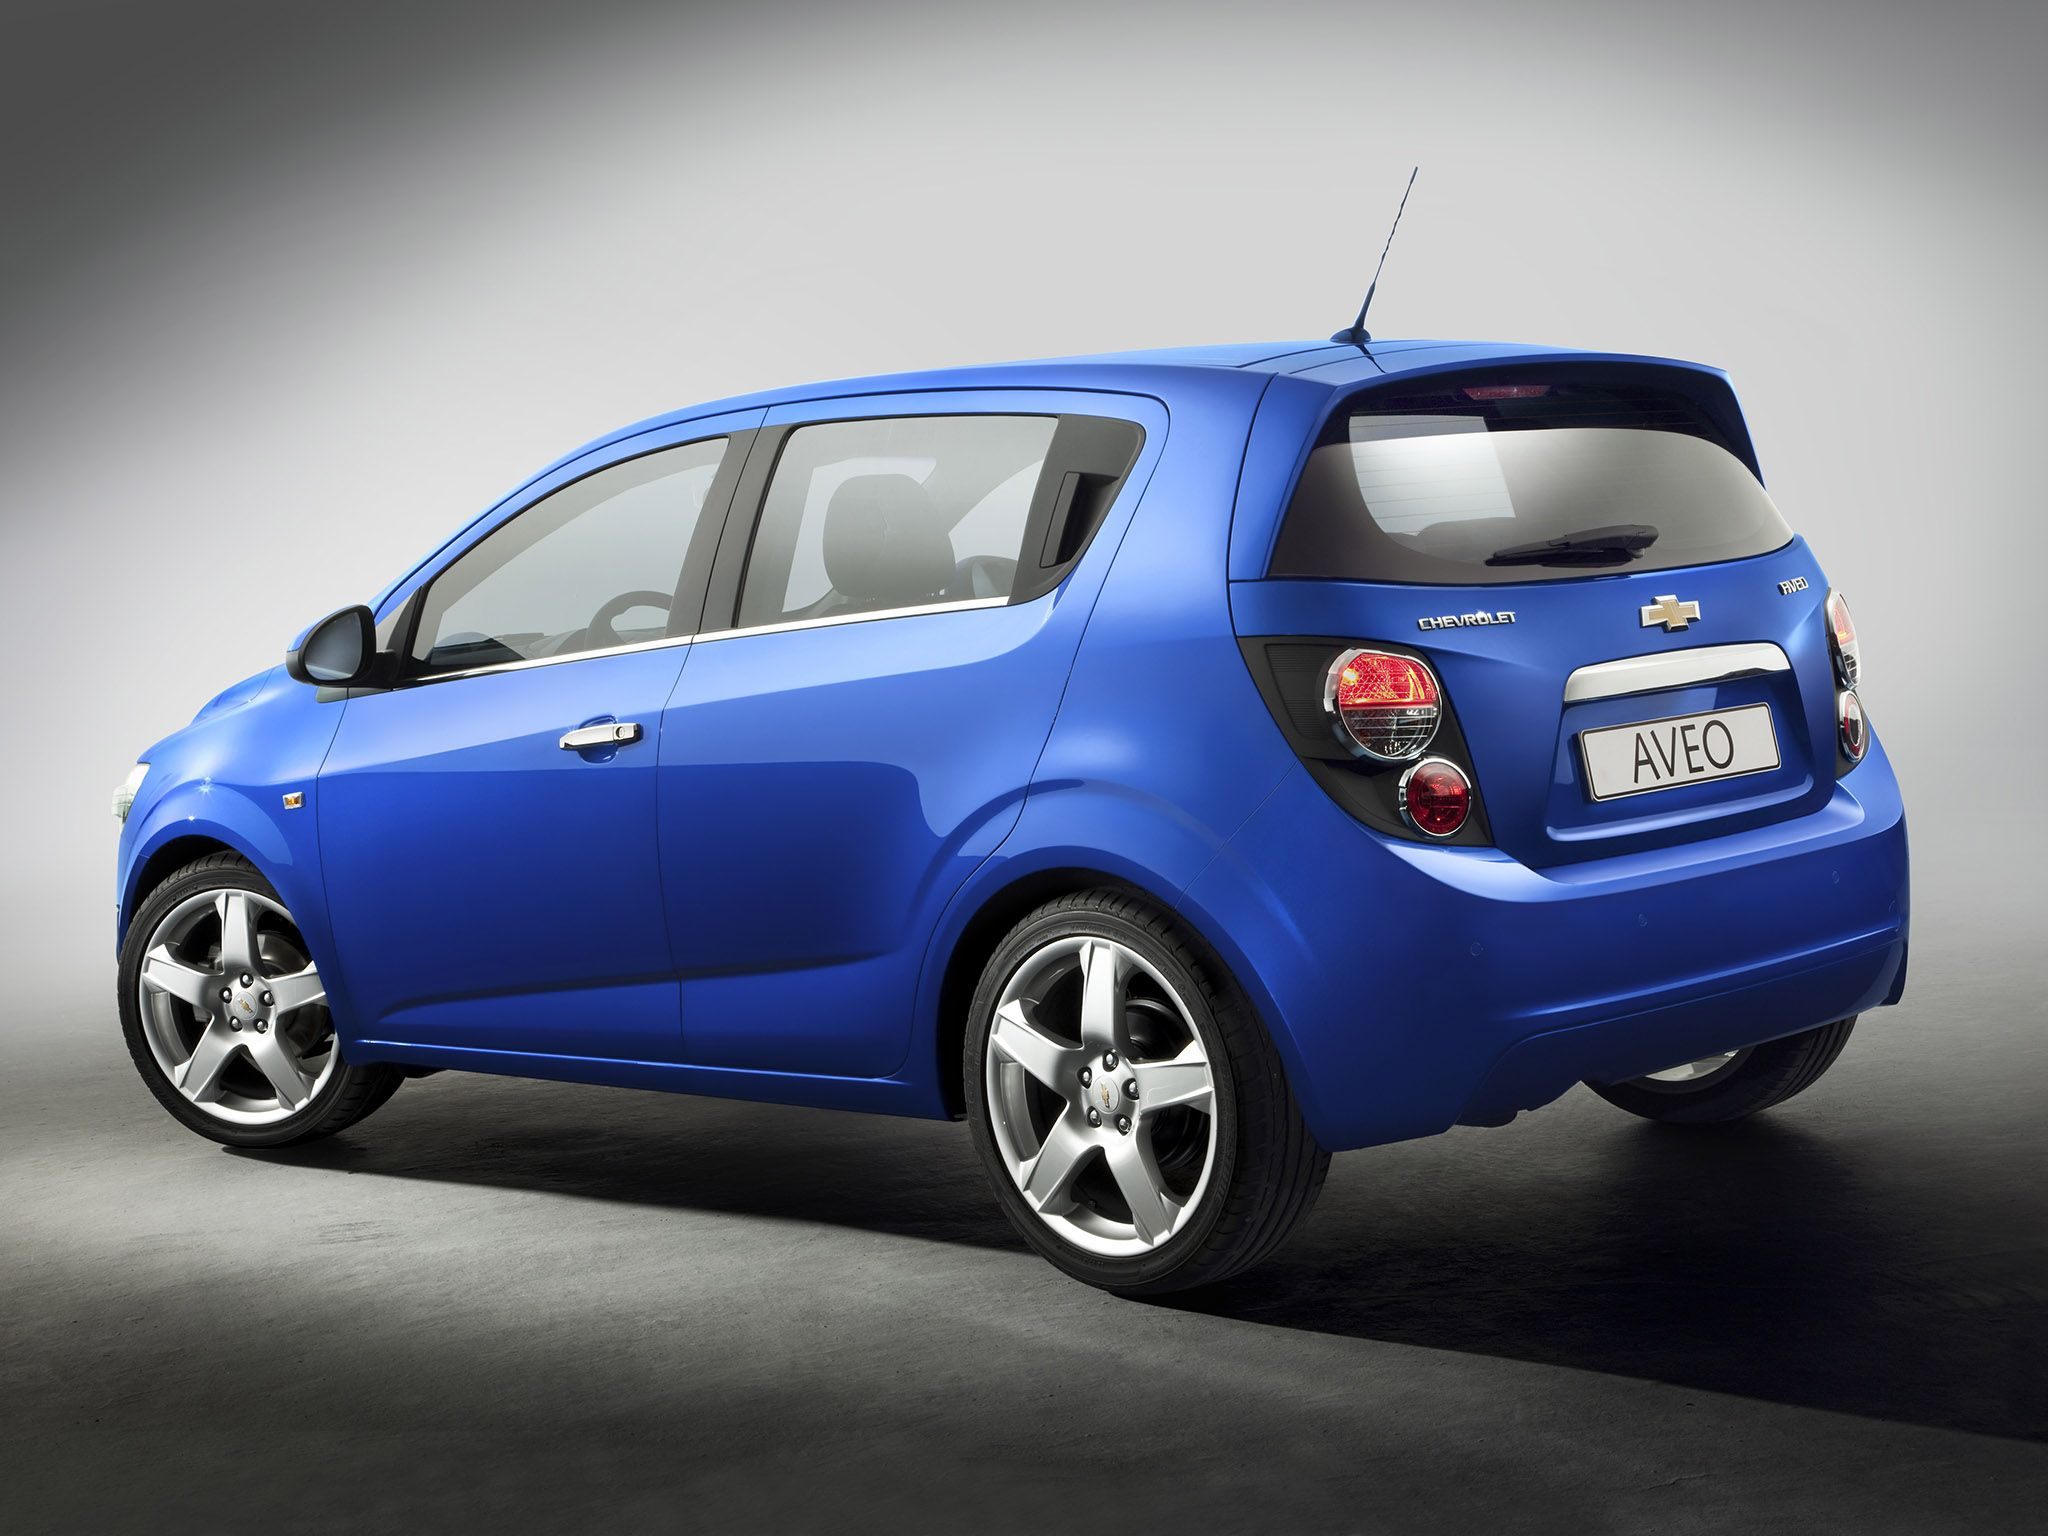 2012 Chevrolet Aveo Hatchback Blue Car Side Rear Chevrolet